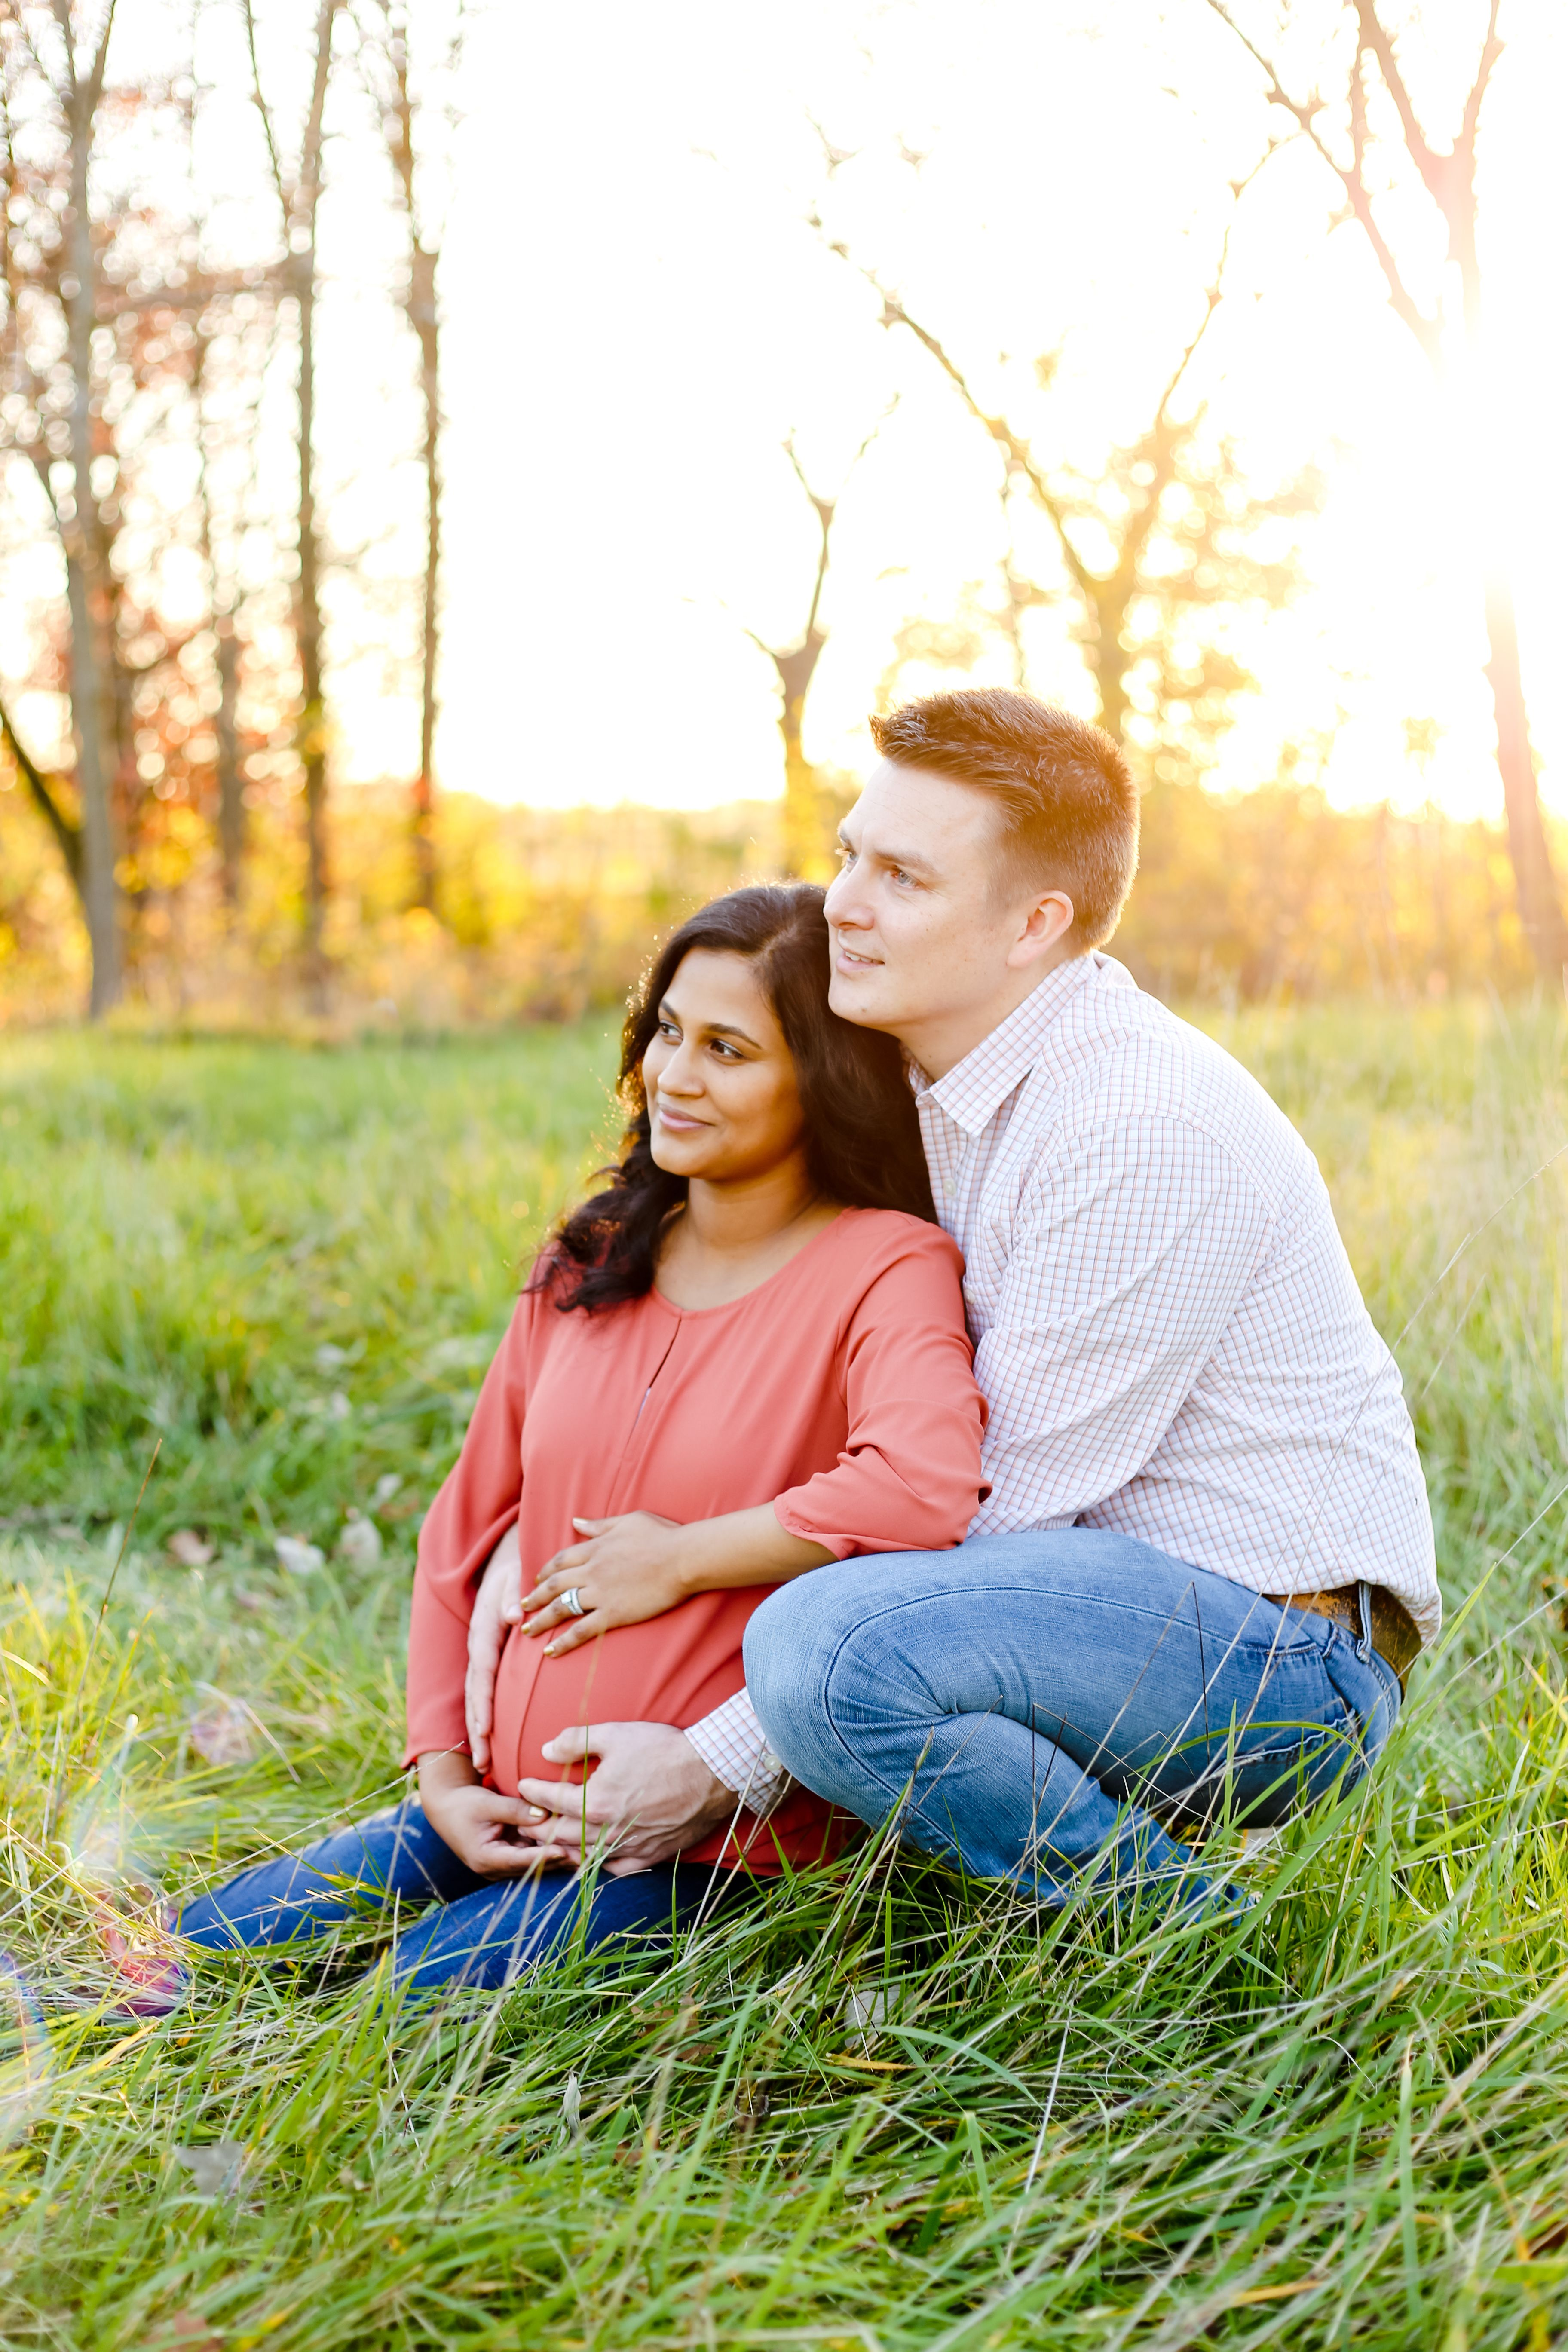 Franklin, Wisconsin, rustic outdoor sunset maternity photography session. Photo by Kelsey Jorissen Photography.